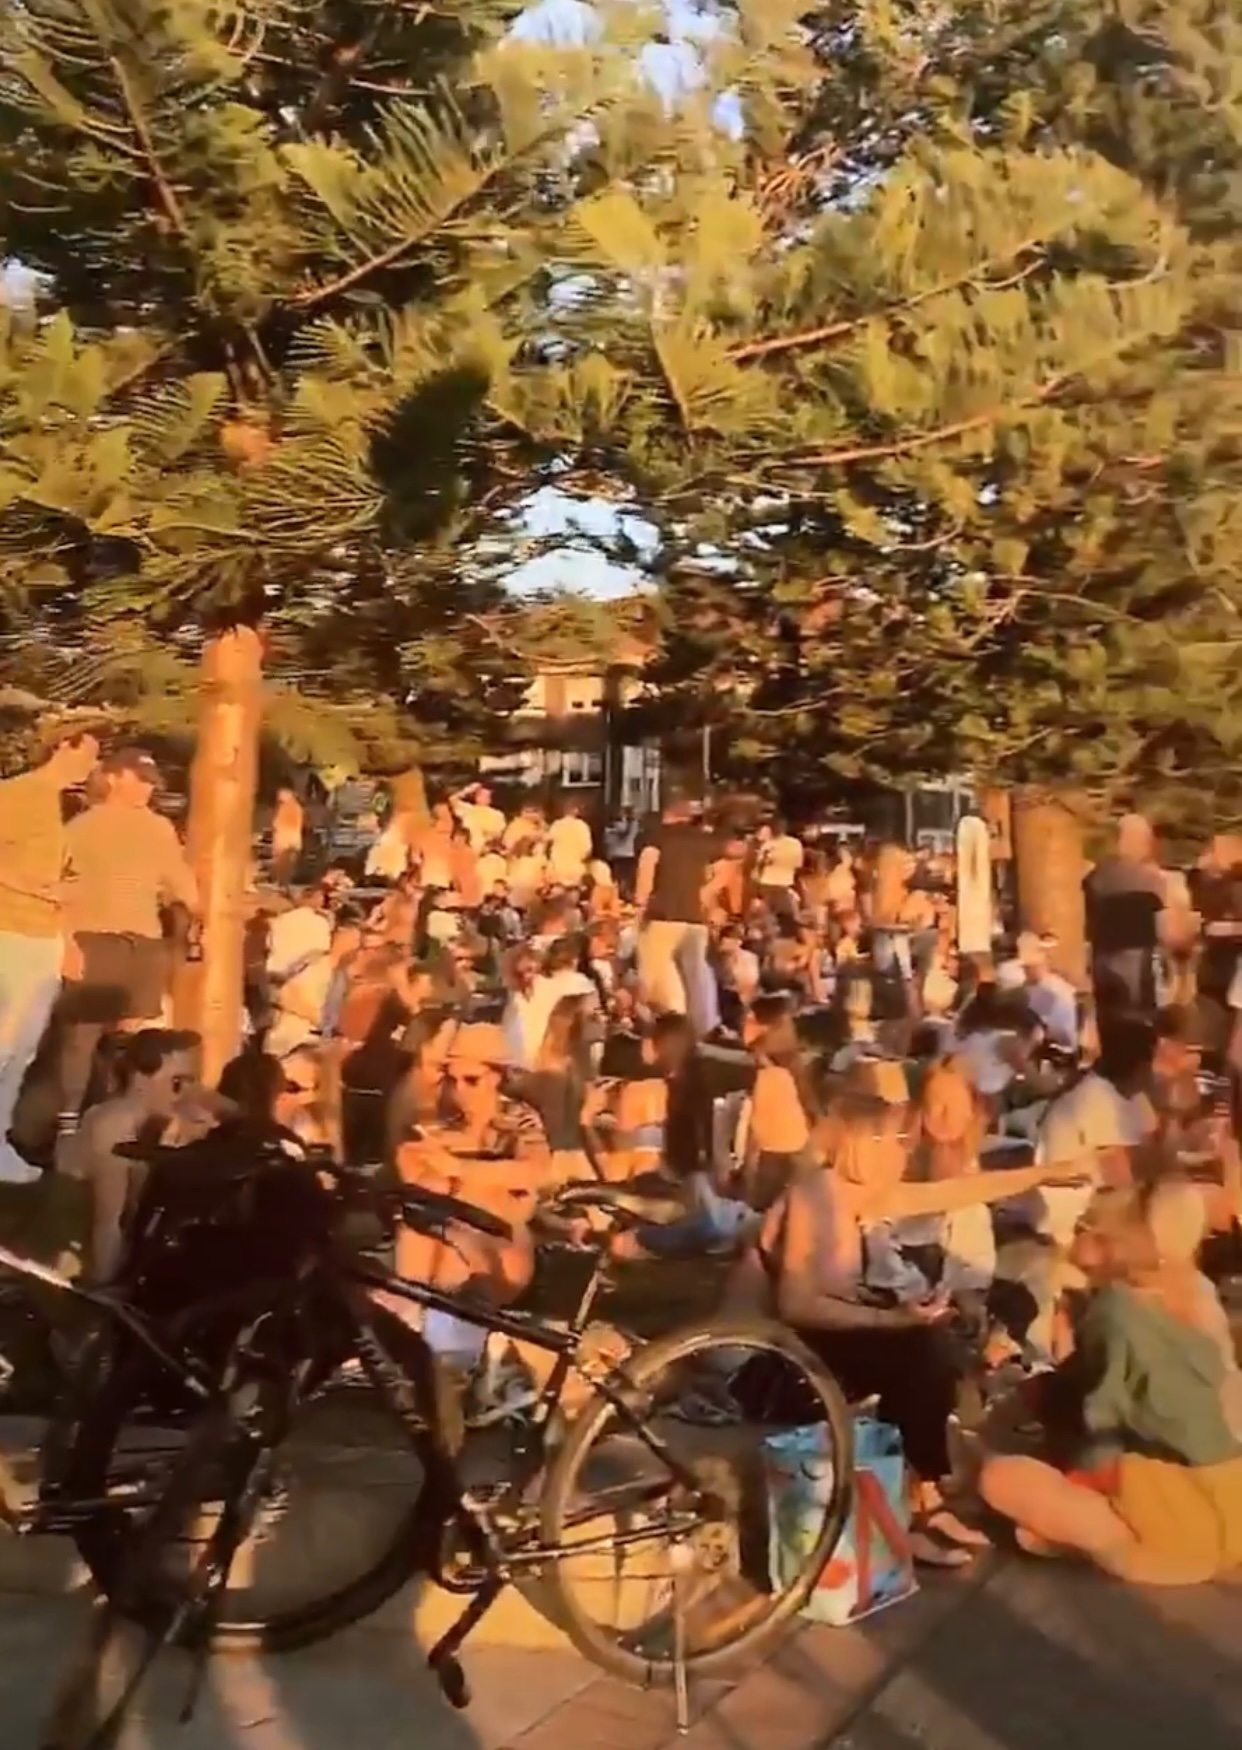 Police called to break up huge crowds at Bondi and Manly